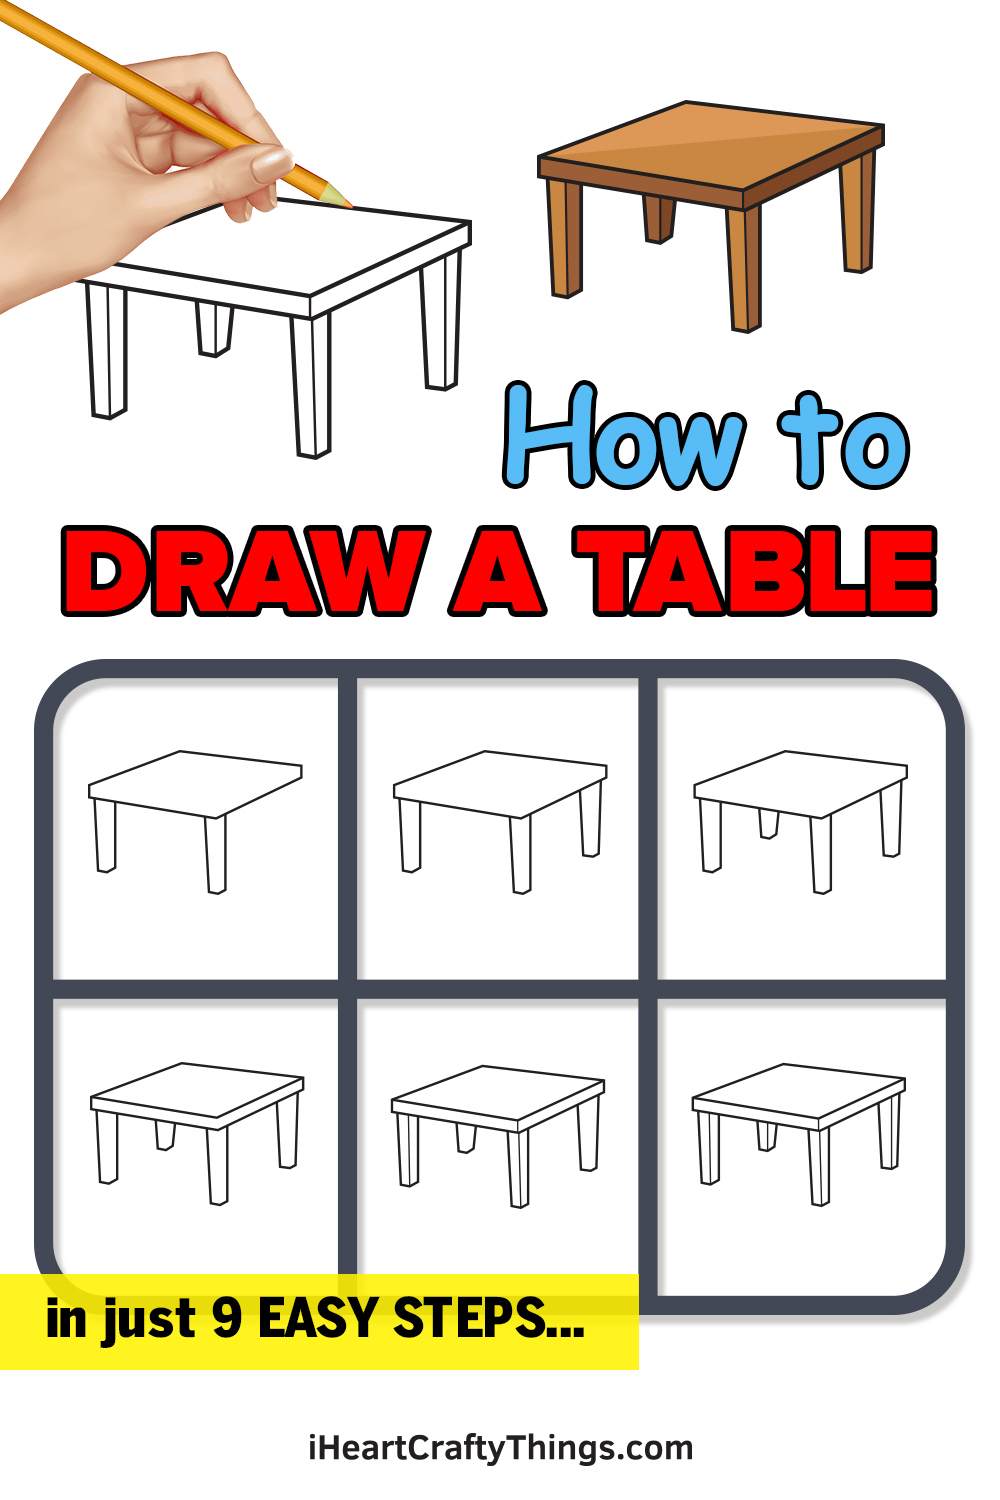 how to draw a table in 9 easy steps